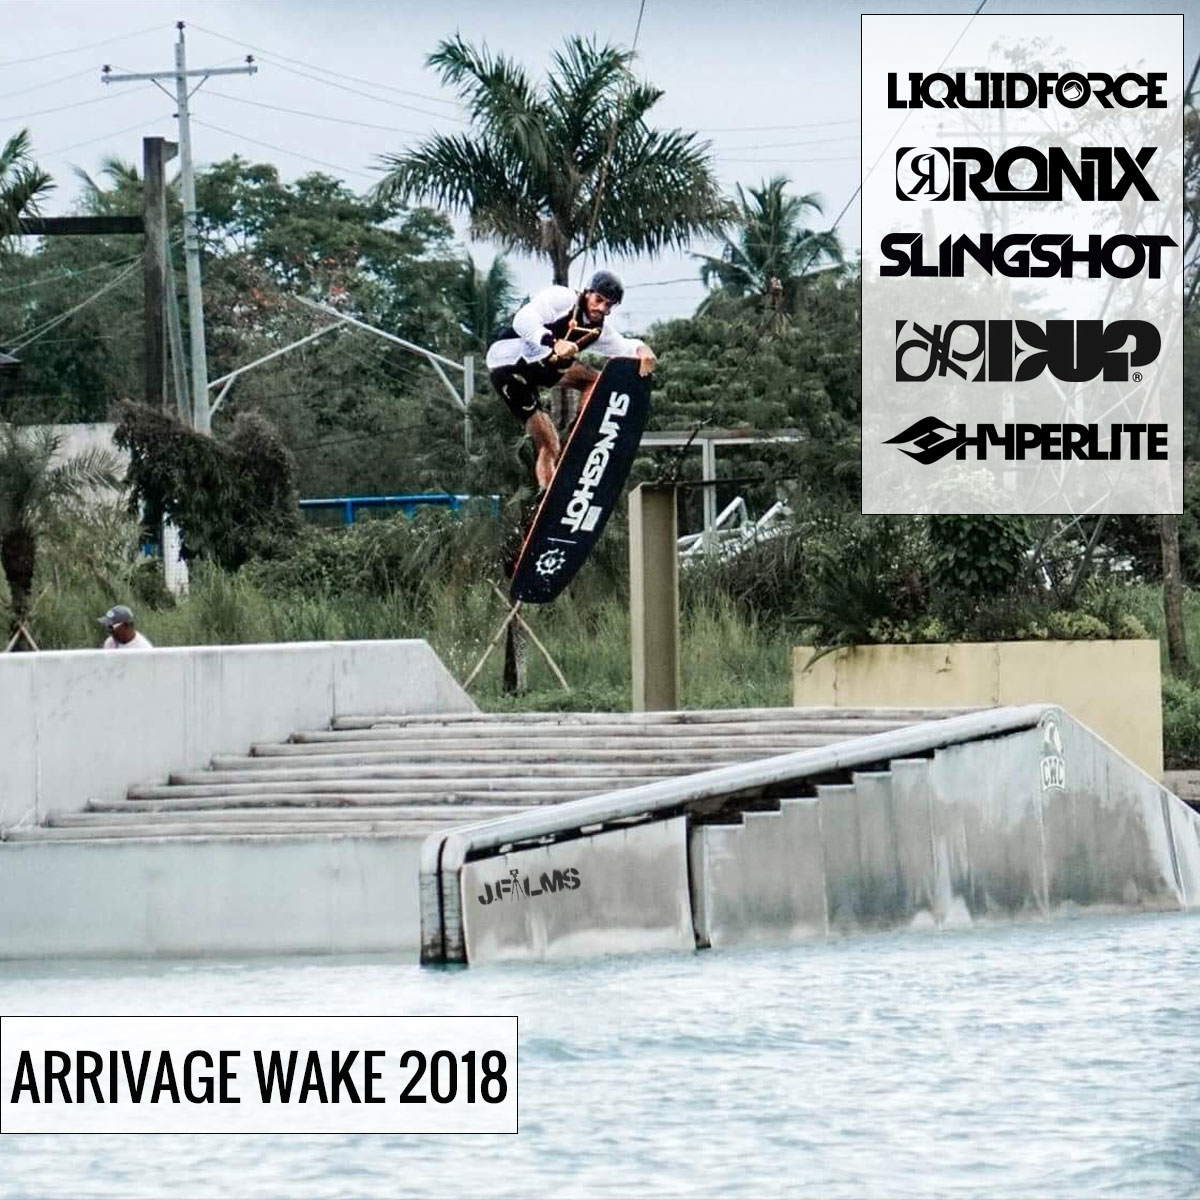 Arrivage-wake-2018fb